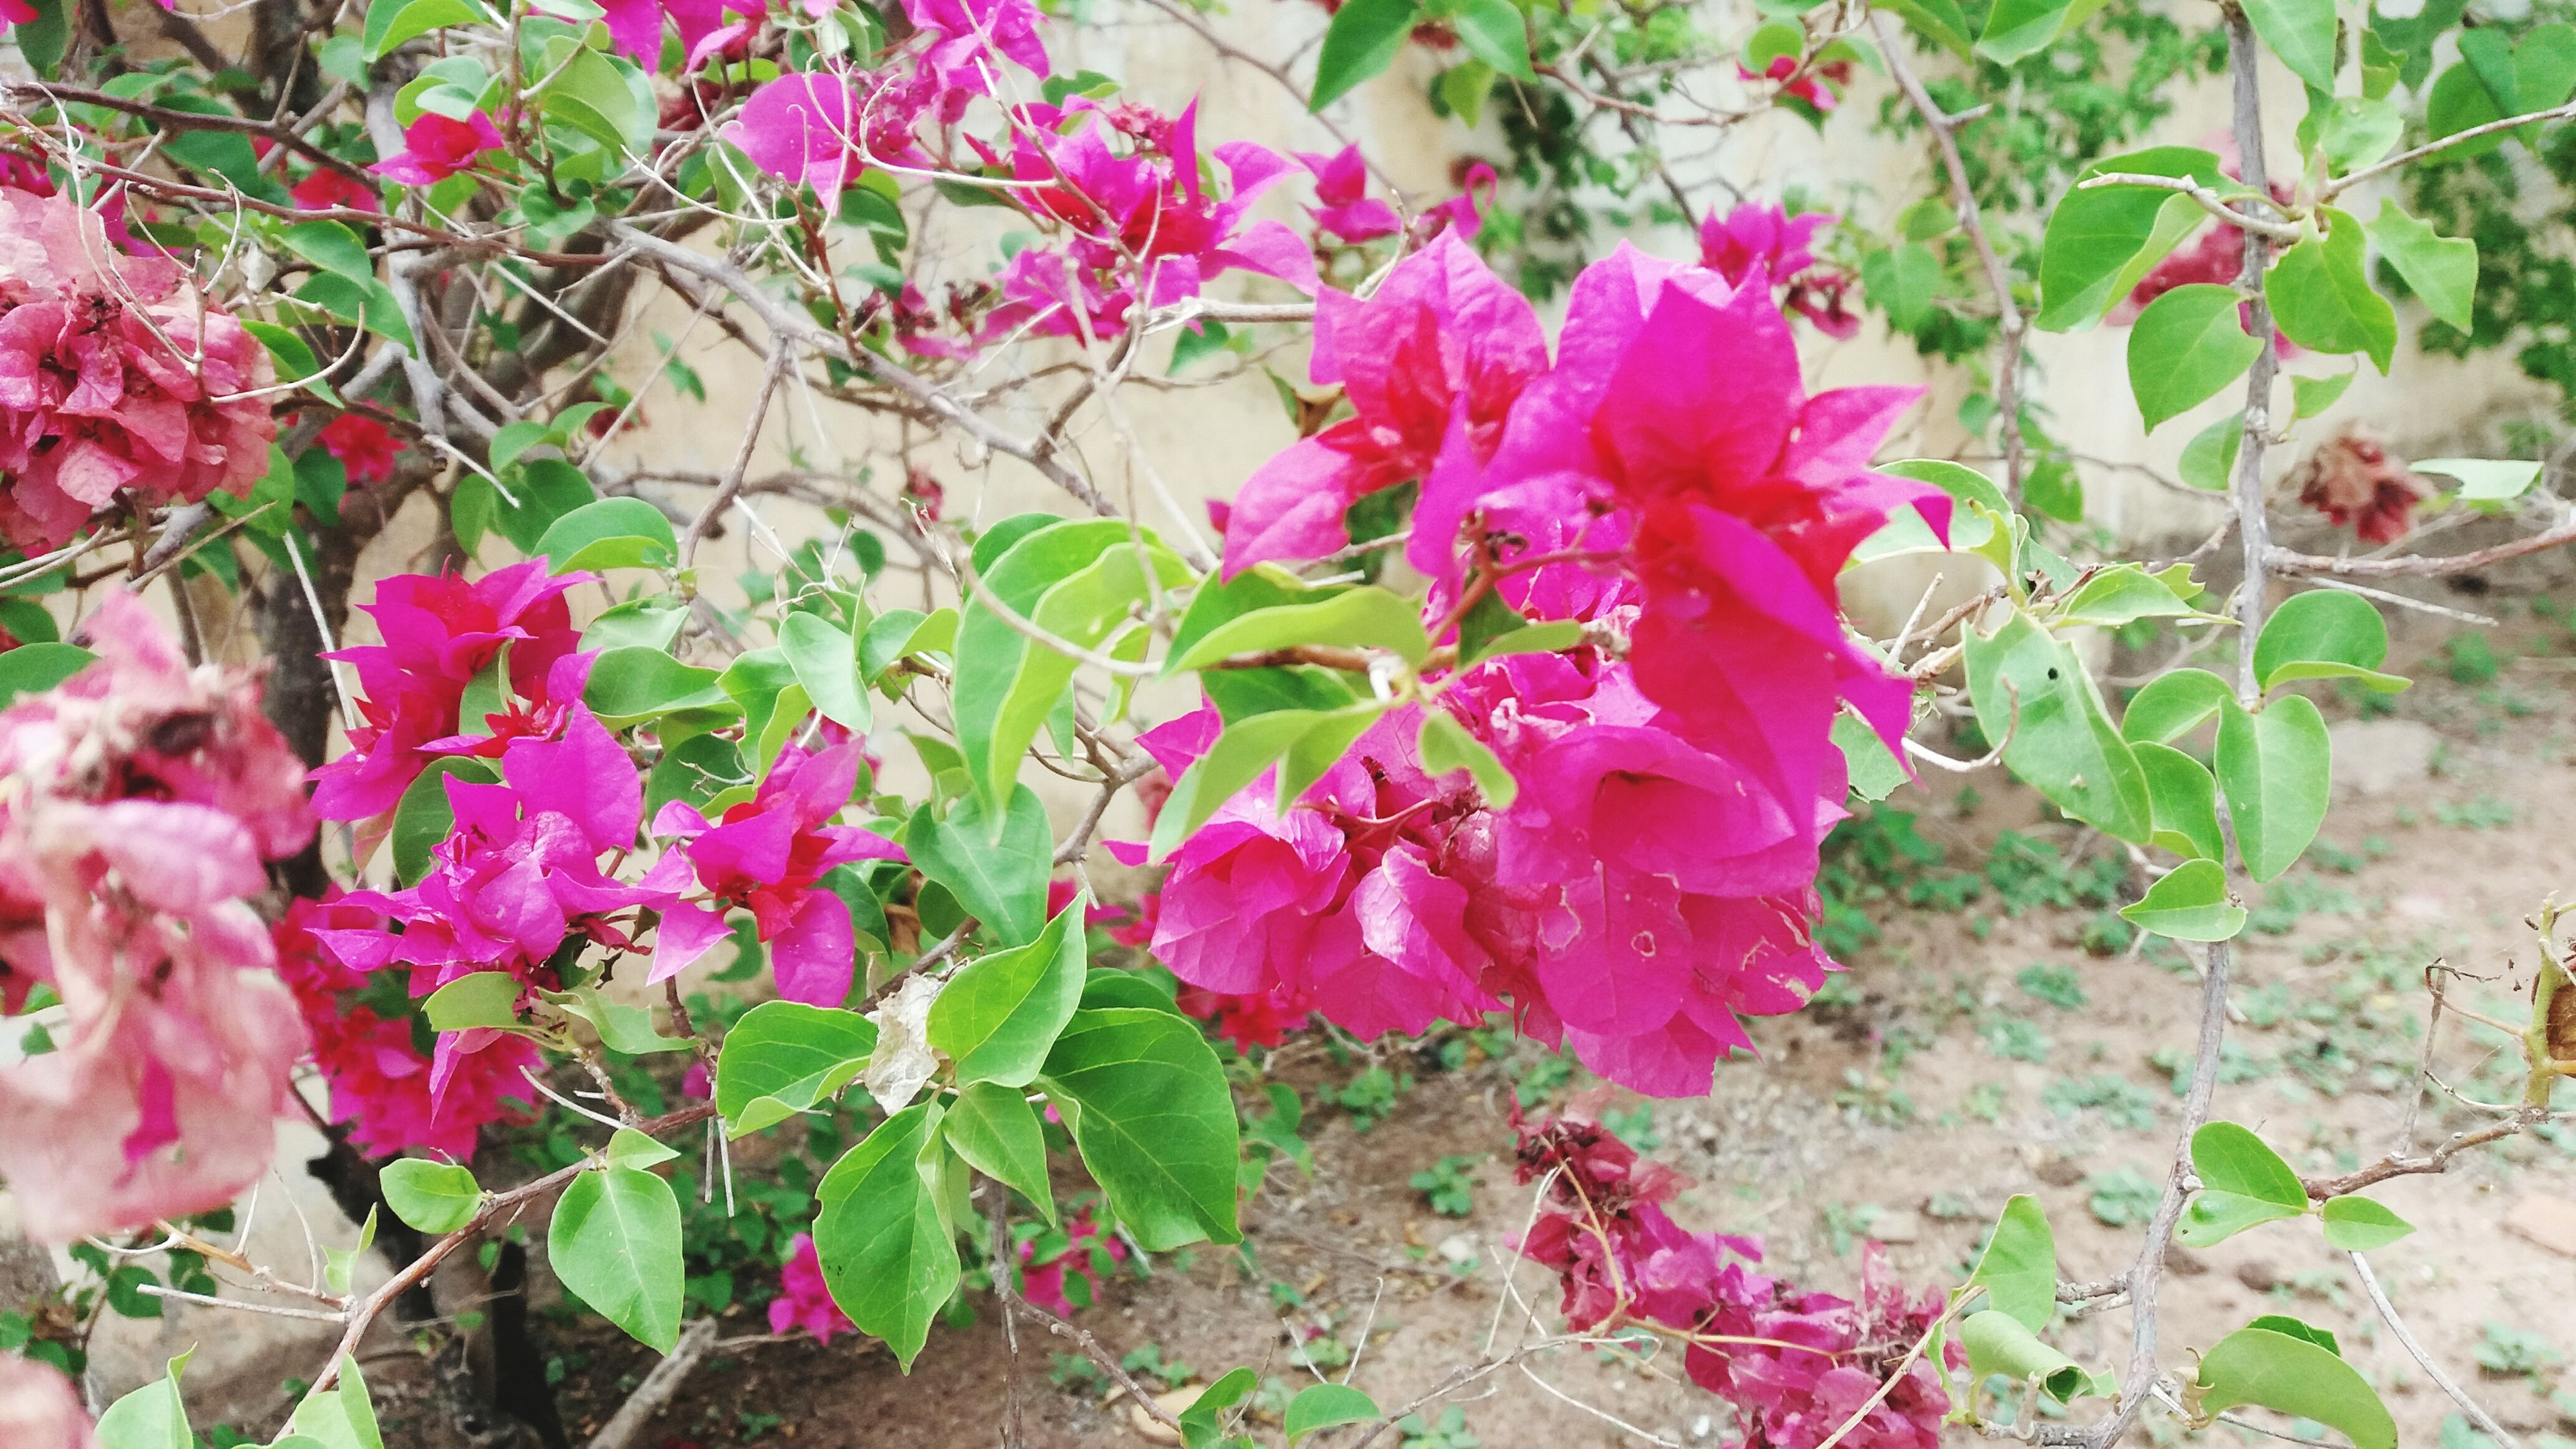 flower, growth, plant, nature, fragility, beauty in nature, pink color, petal, blossom, no people, leaf, freshness, blooming, outdoors, branch, day, flower head, close-up